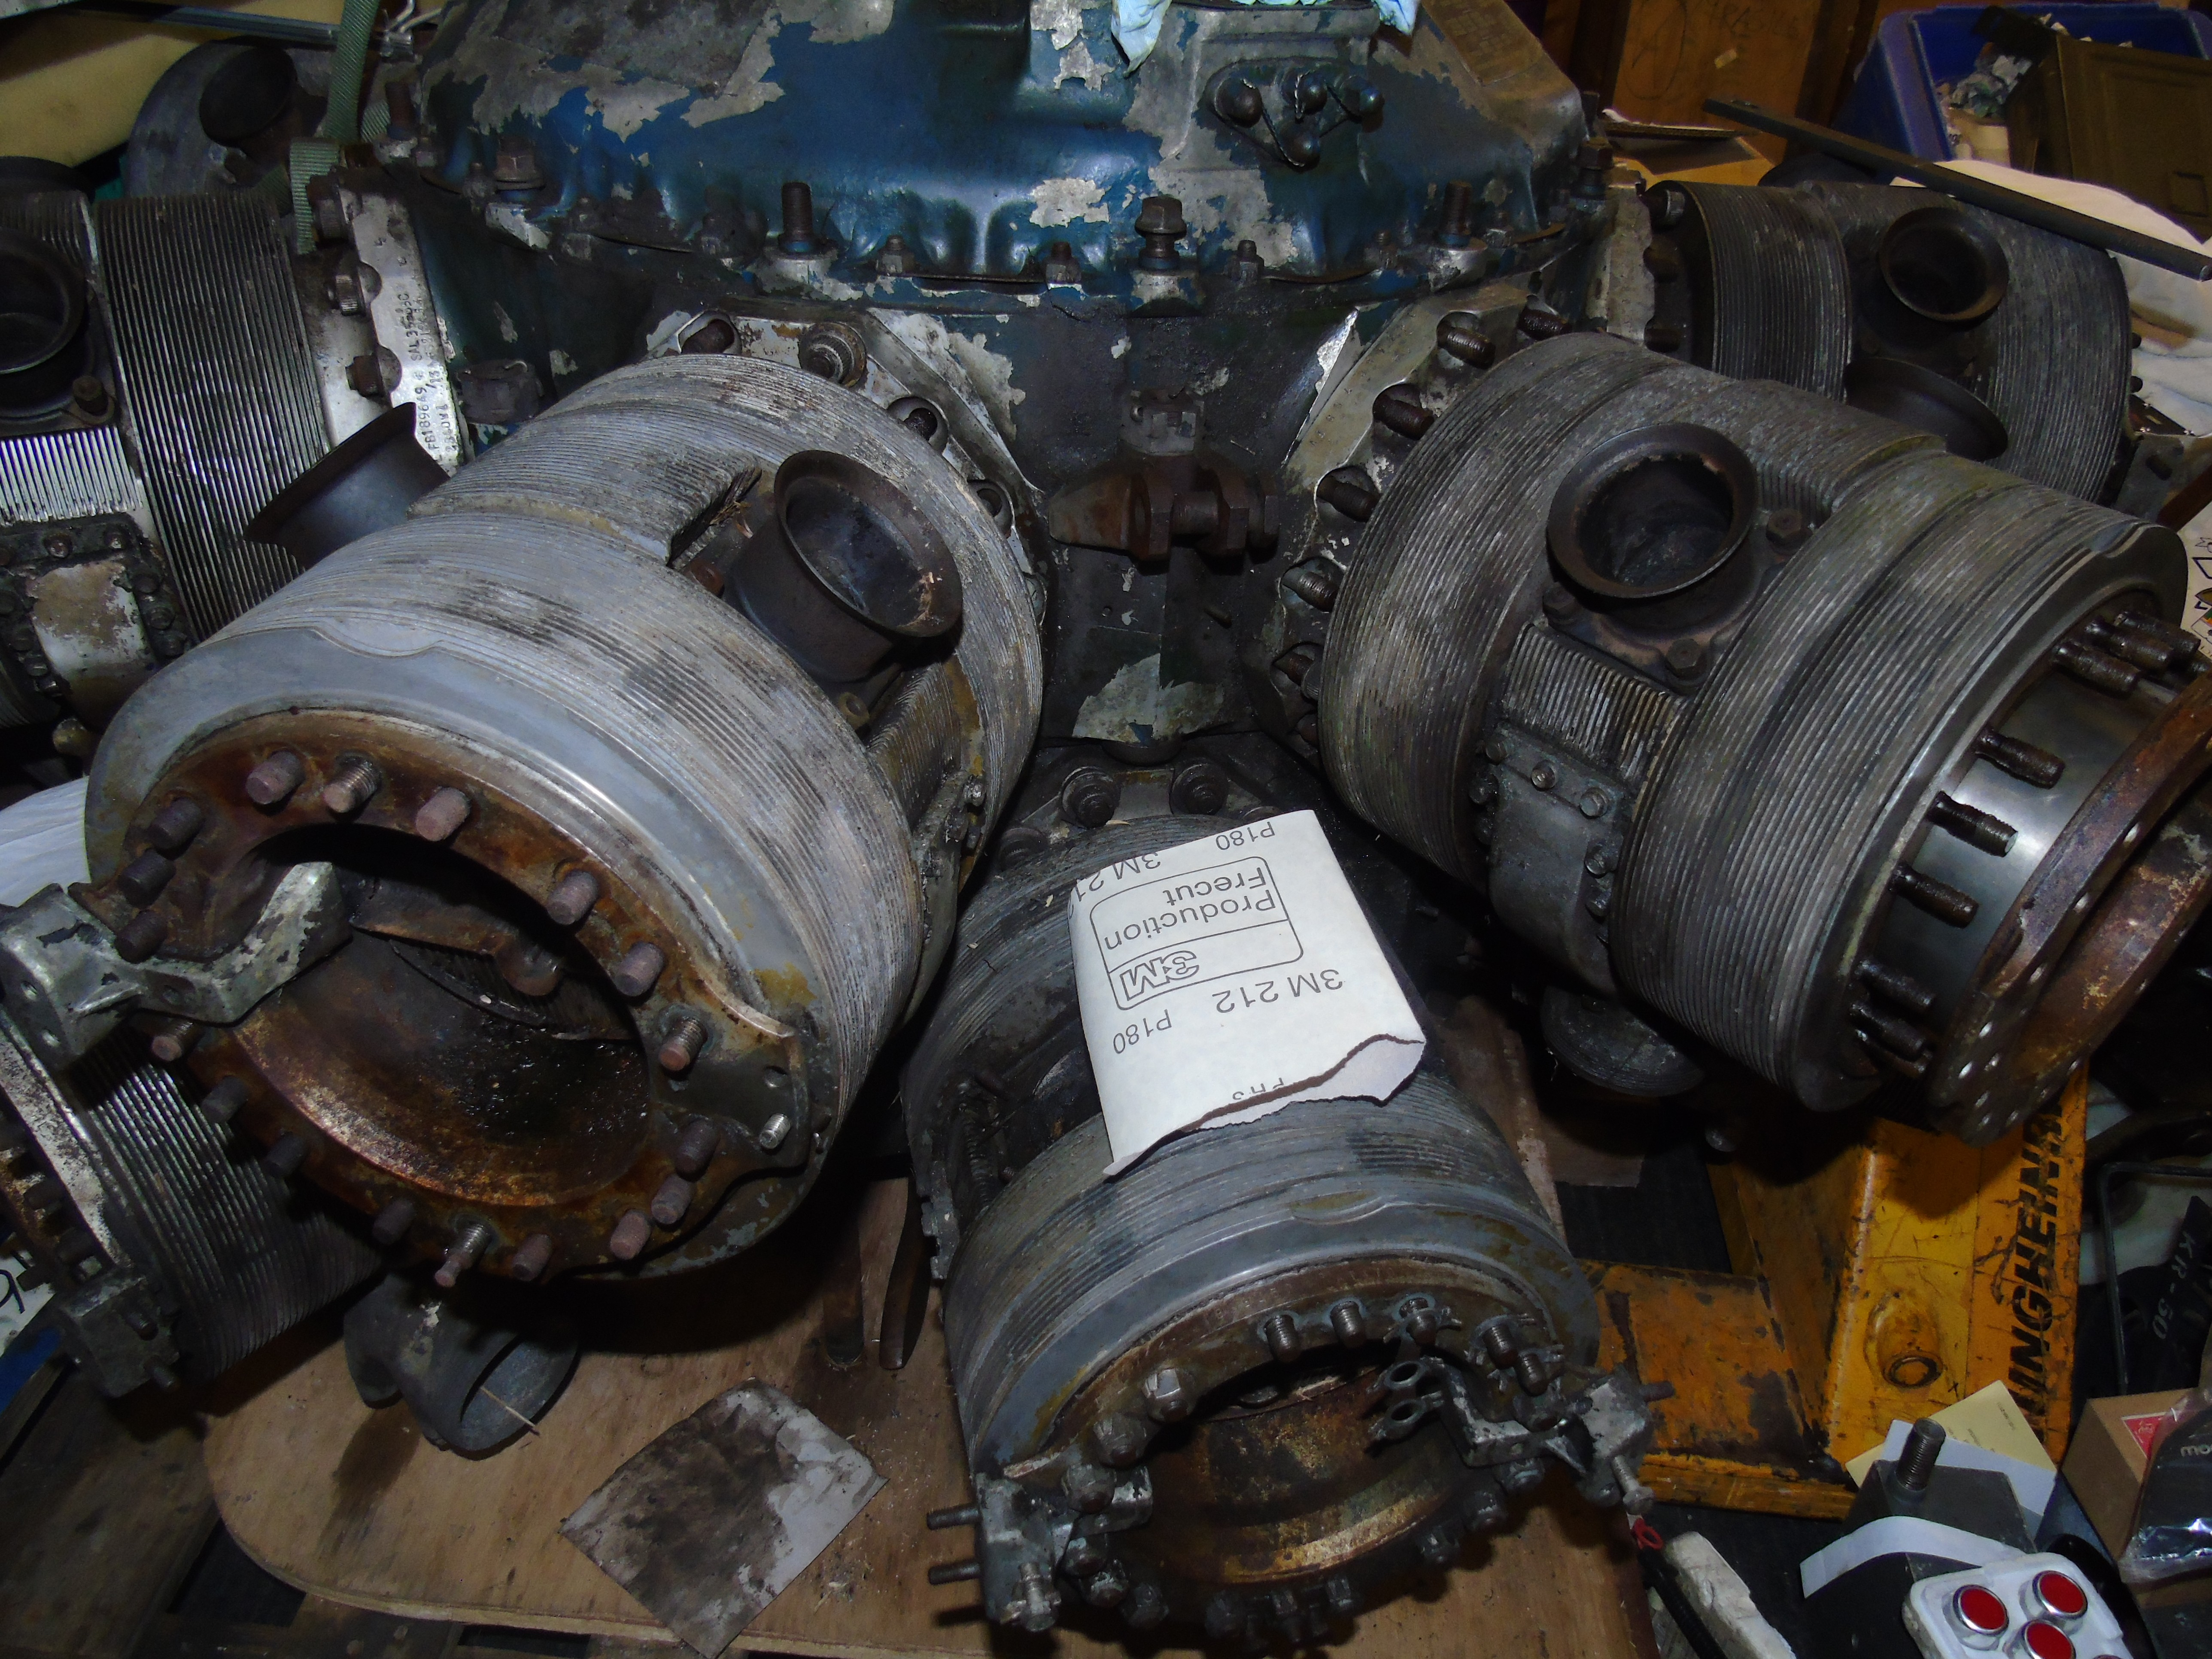 Lot 504 - BRISTOL HERCULES RADIAL AIRCRAFT ENGINE WITH MANUAL